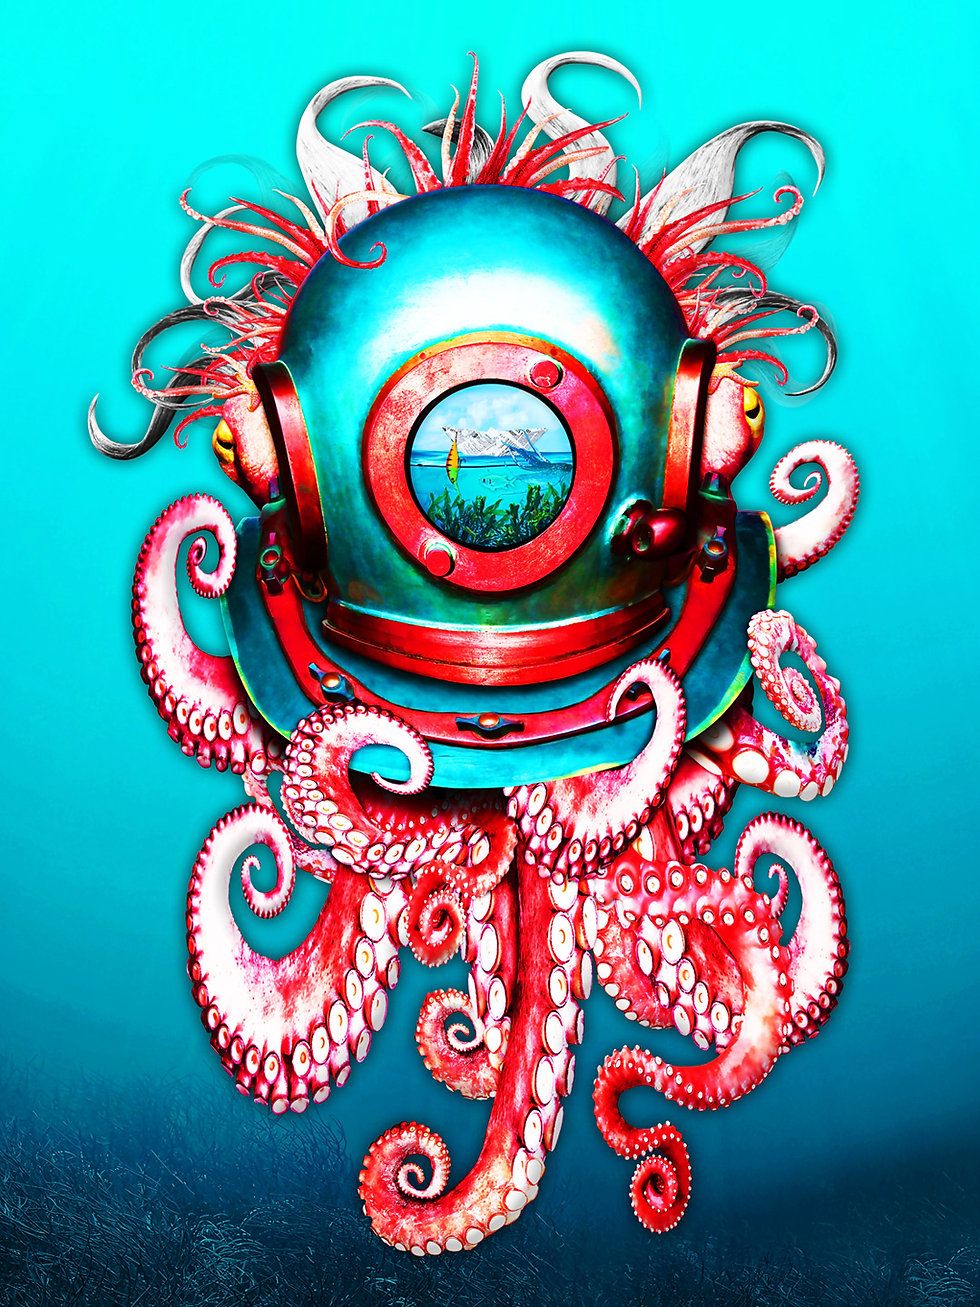 octopus_artwork_Michala_Brincker_1.jpg